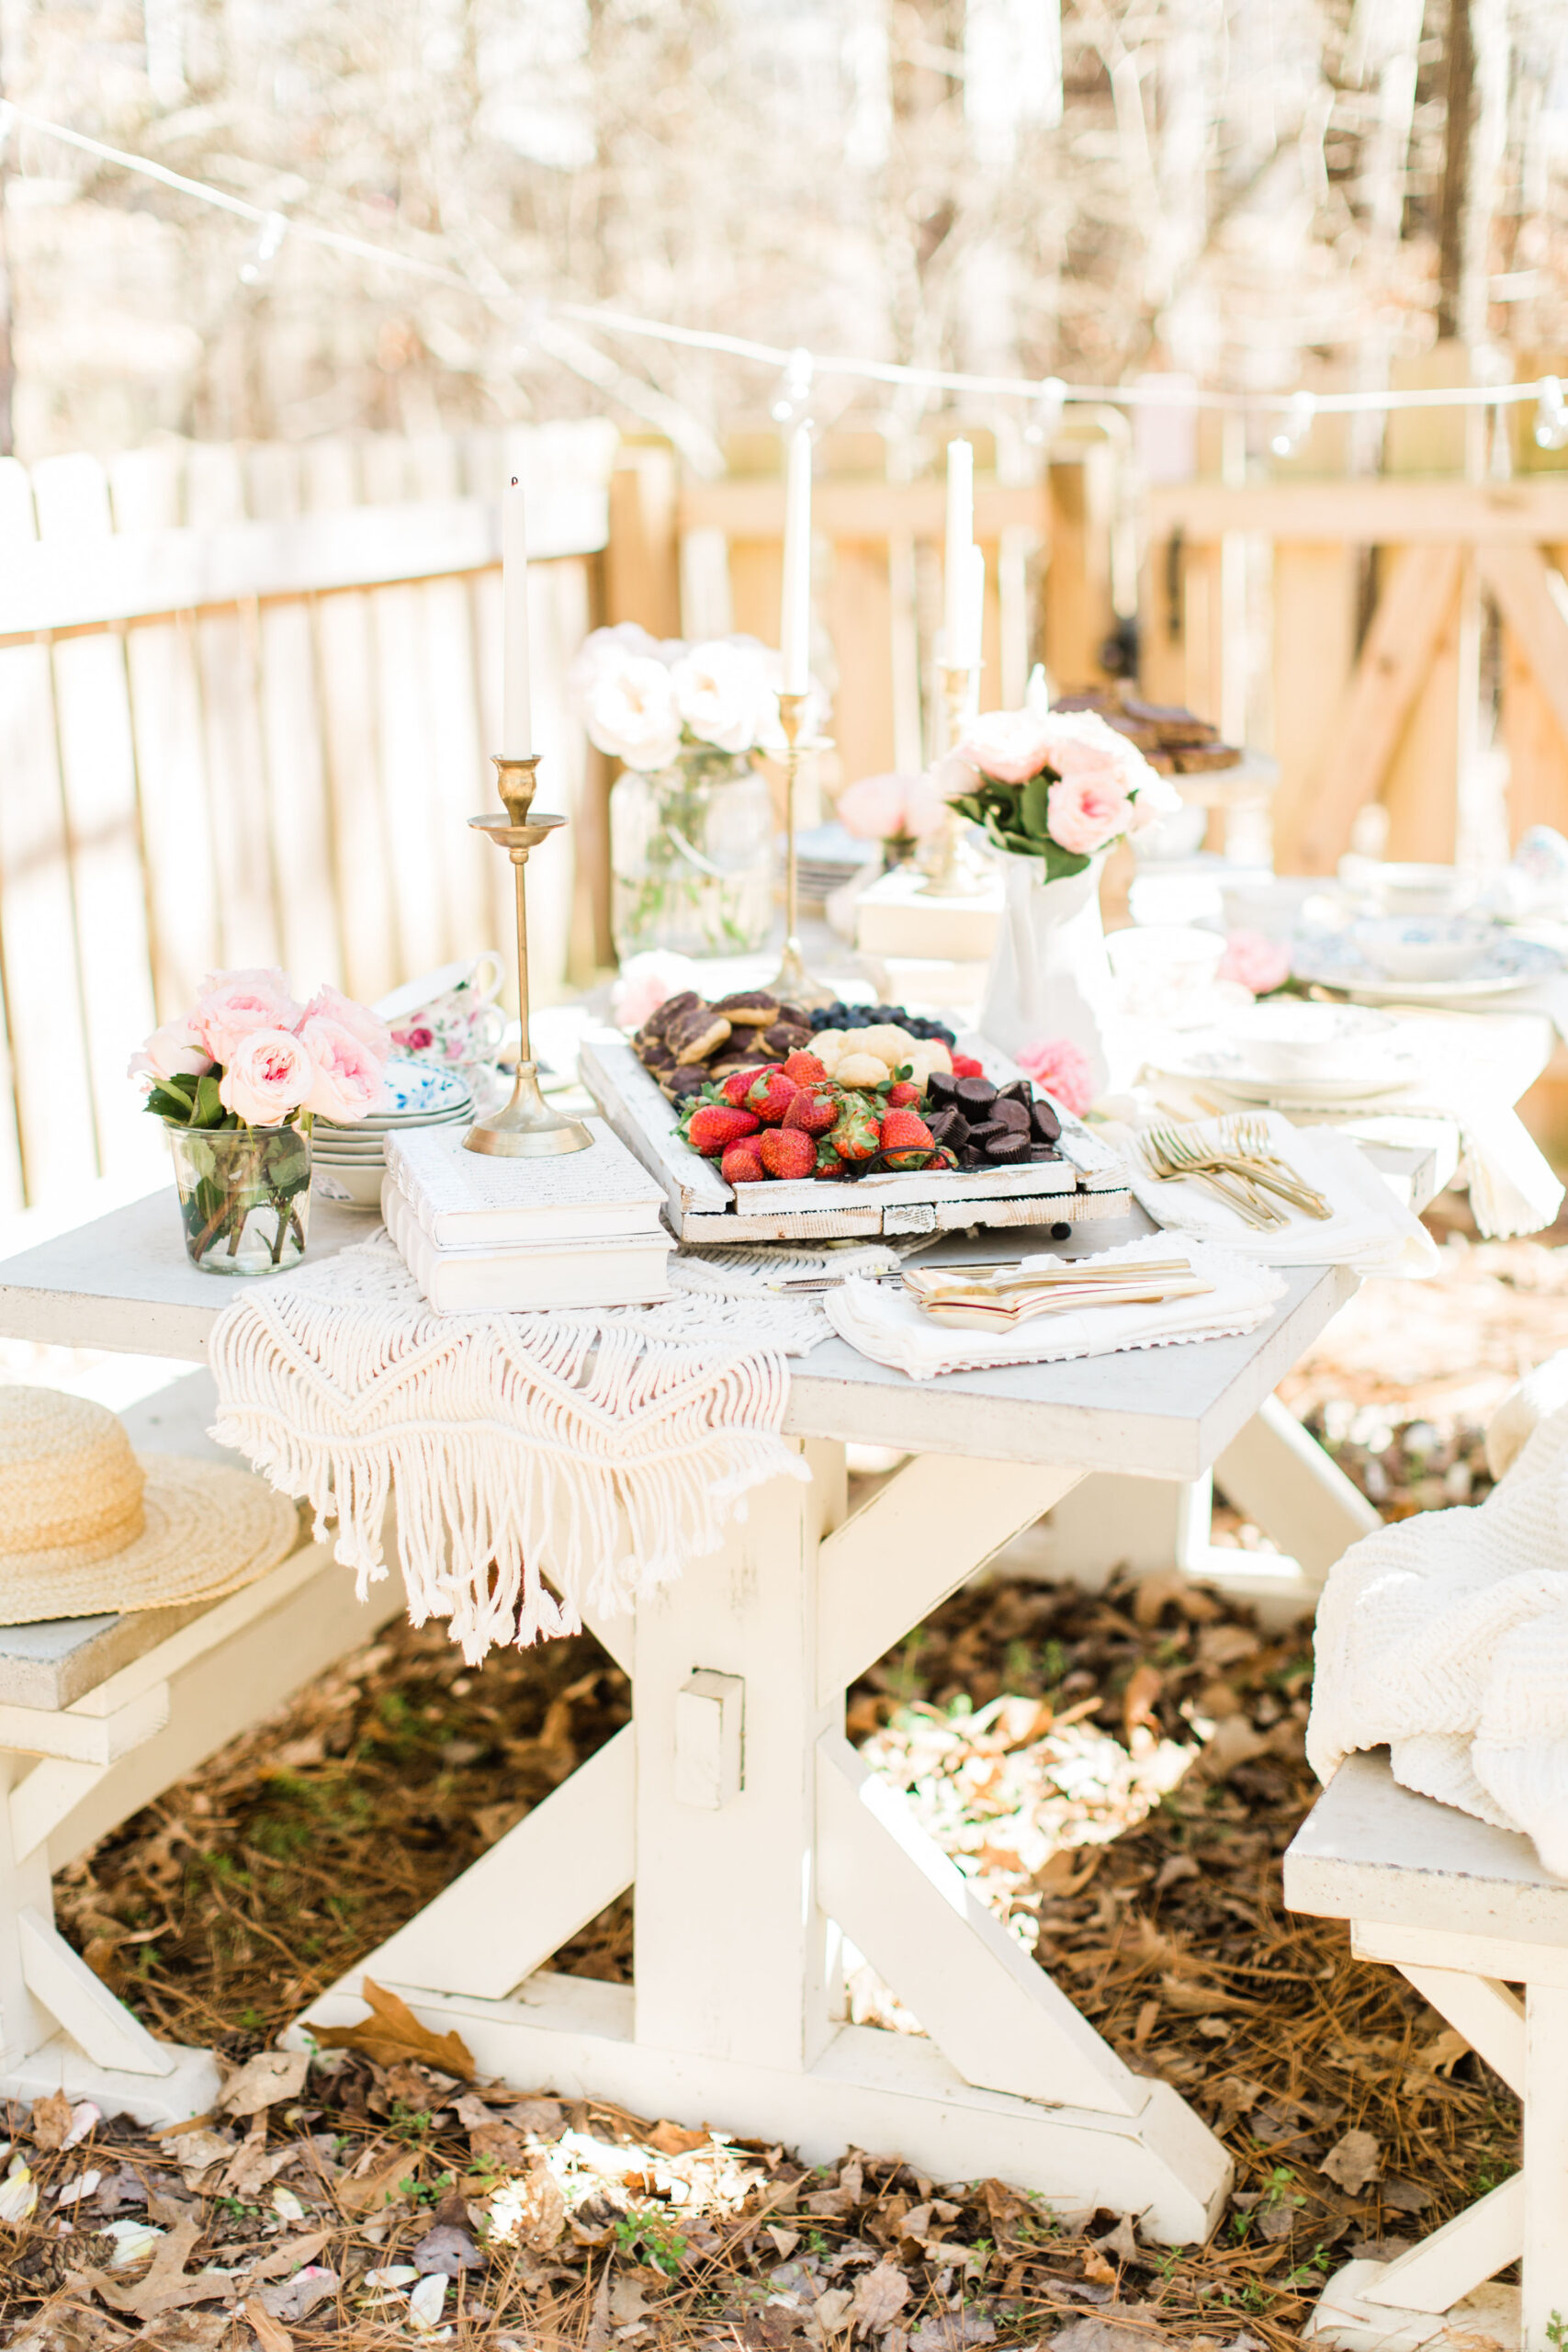 Whimsical Outdoor Spring Tea and Dessert Party